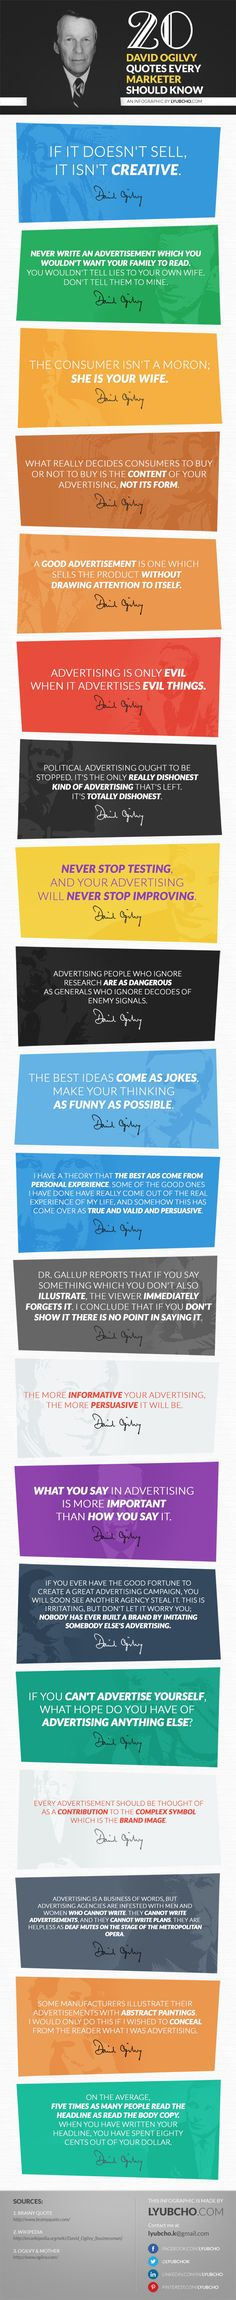 20 David Ogilvy Quotes Every Marketer Should Know #infographic